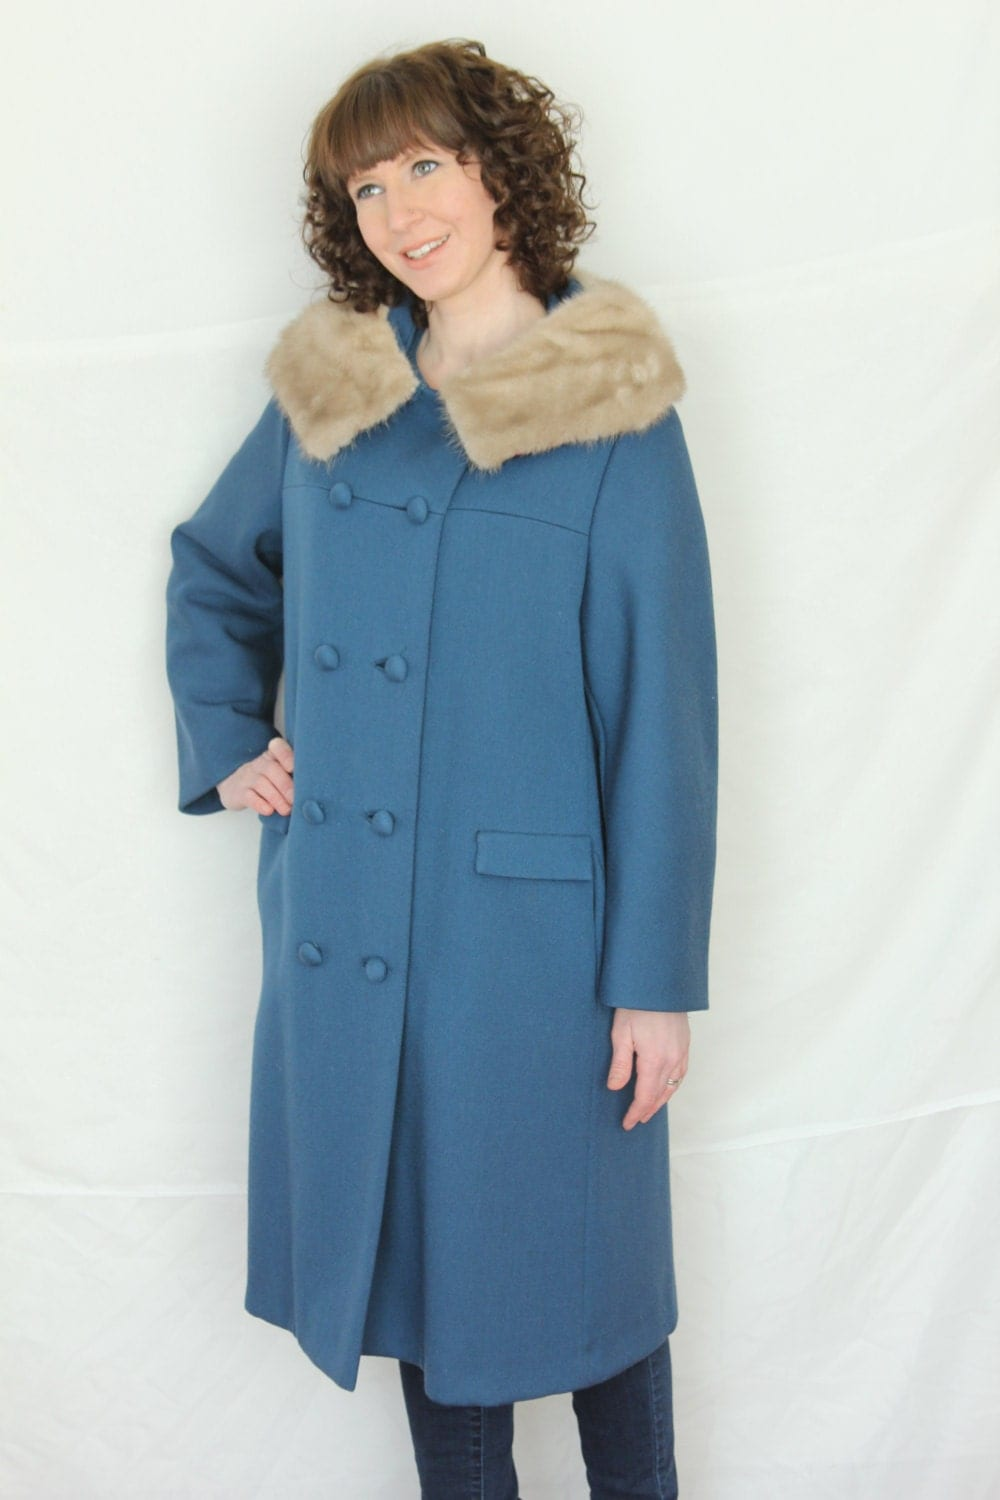 Vintage Double Breasted  Woman's Blue Wool Coat with Fur Collar - foundundertheeaves